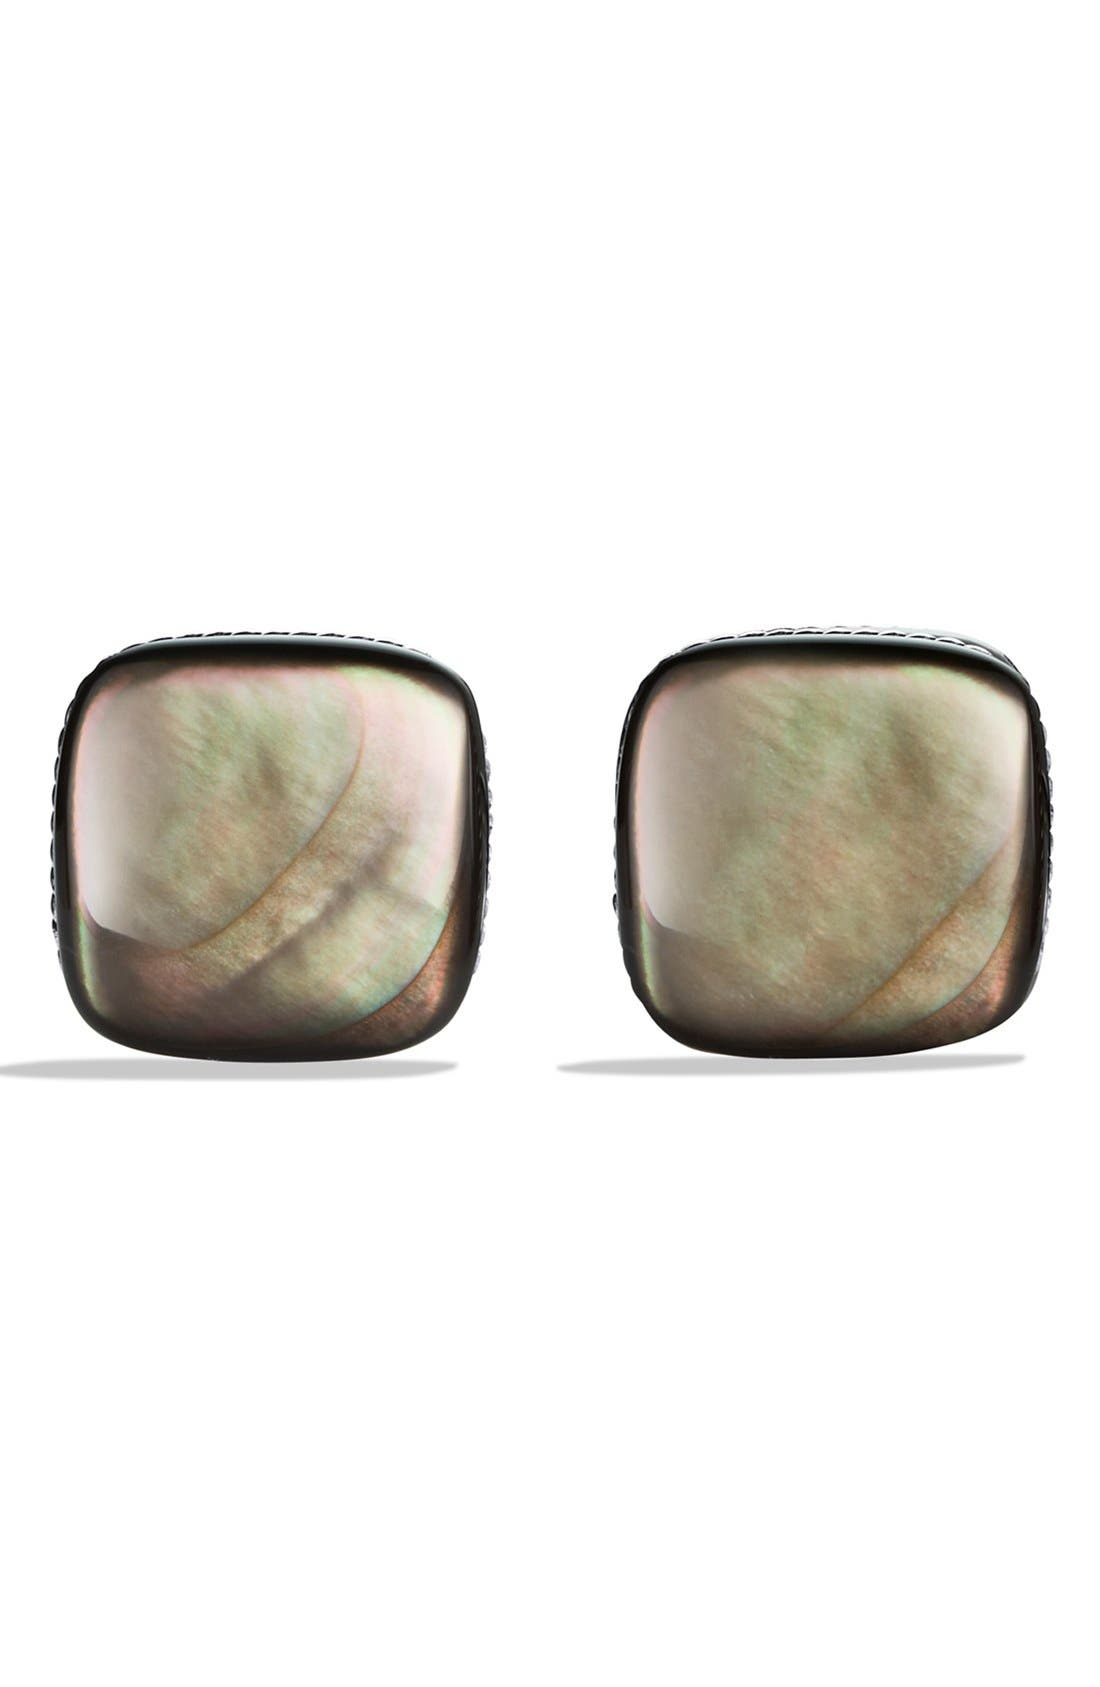 'Streamline' Cuff Links with Black Mother-of-Pearl,                             Alternate thumbnail 3, color,                             BLACK MOTHER OF PEARL